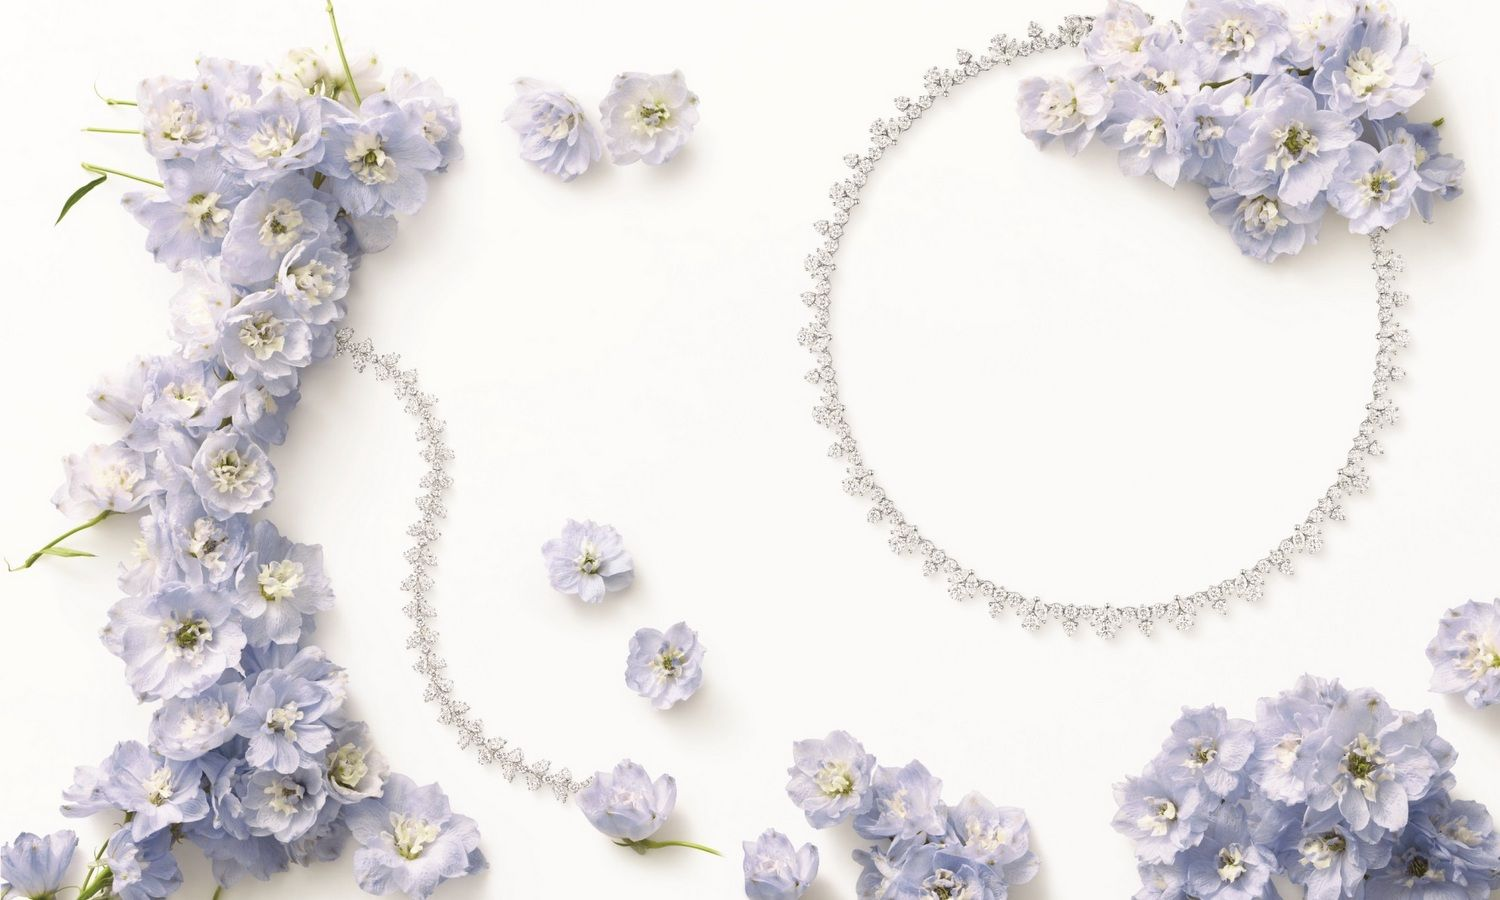 3 Beautiful Jewellery Collections Inspired By Nature